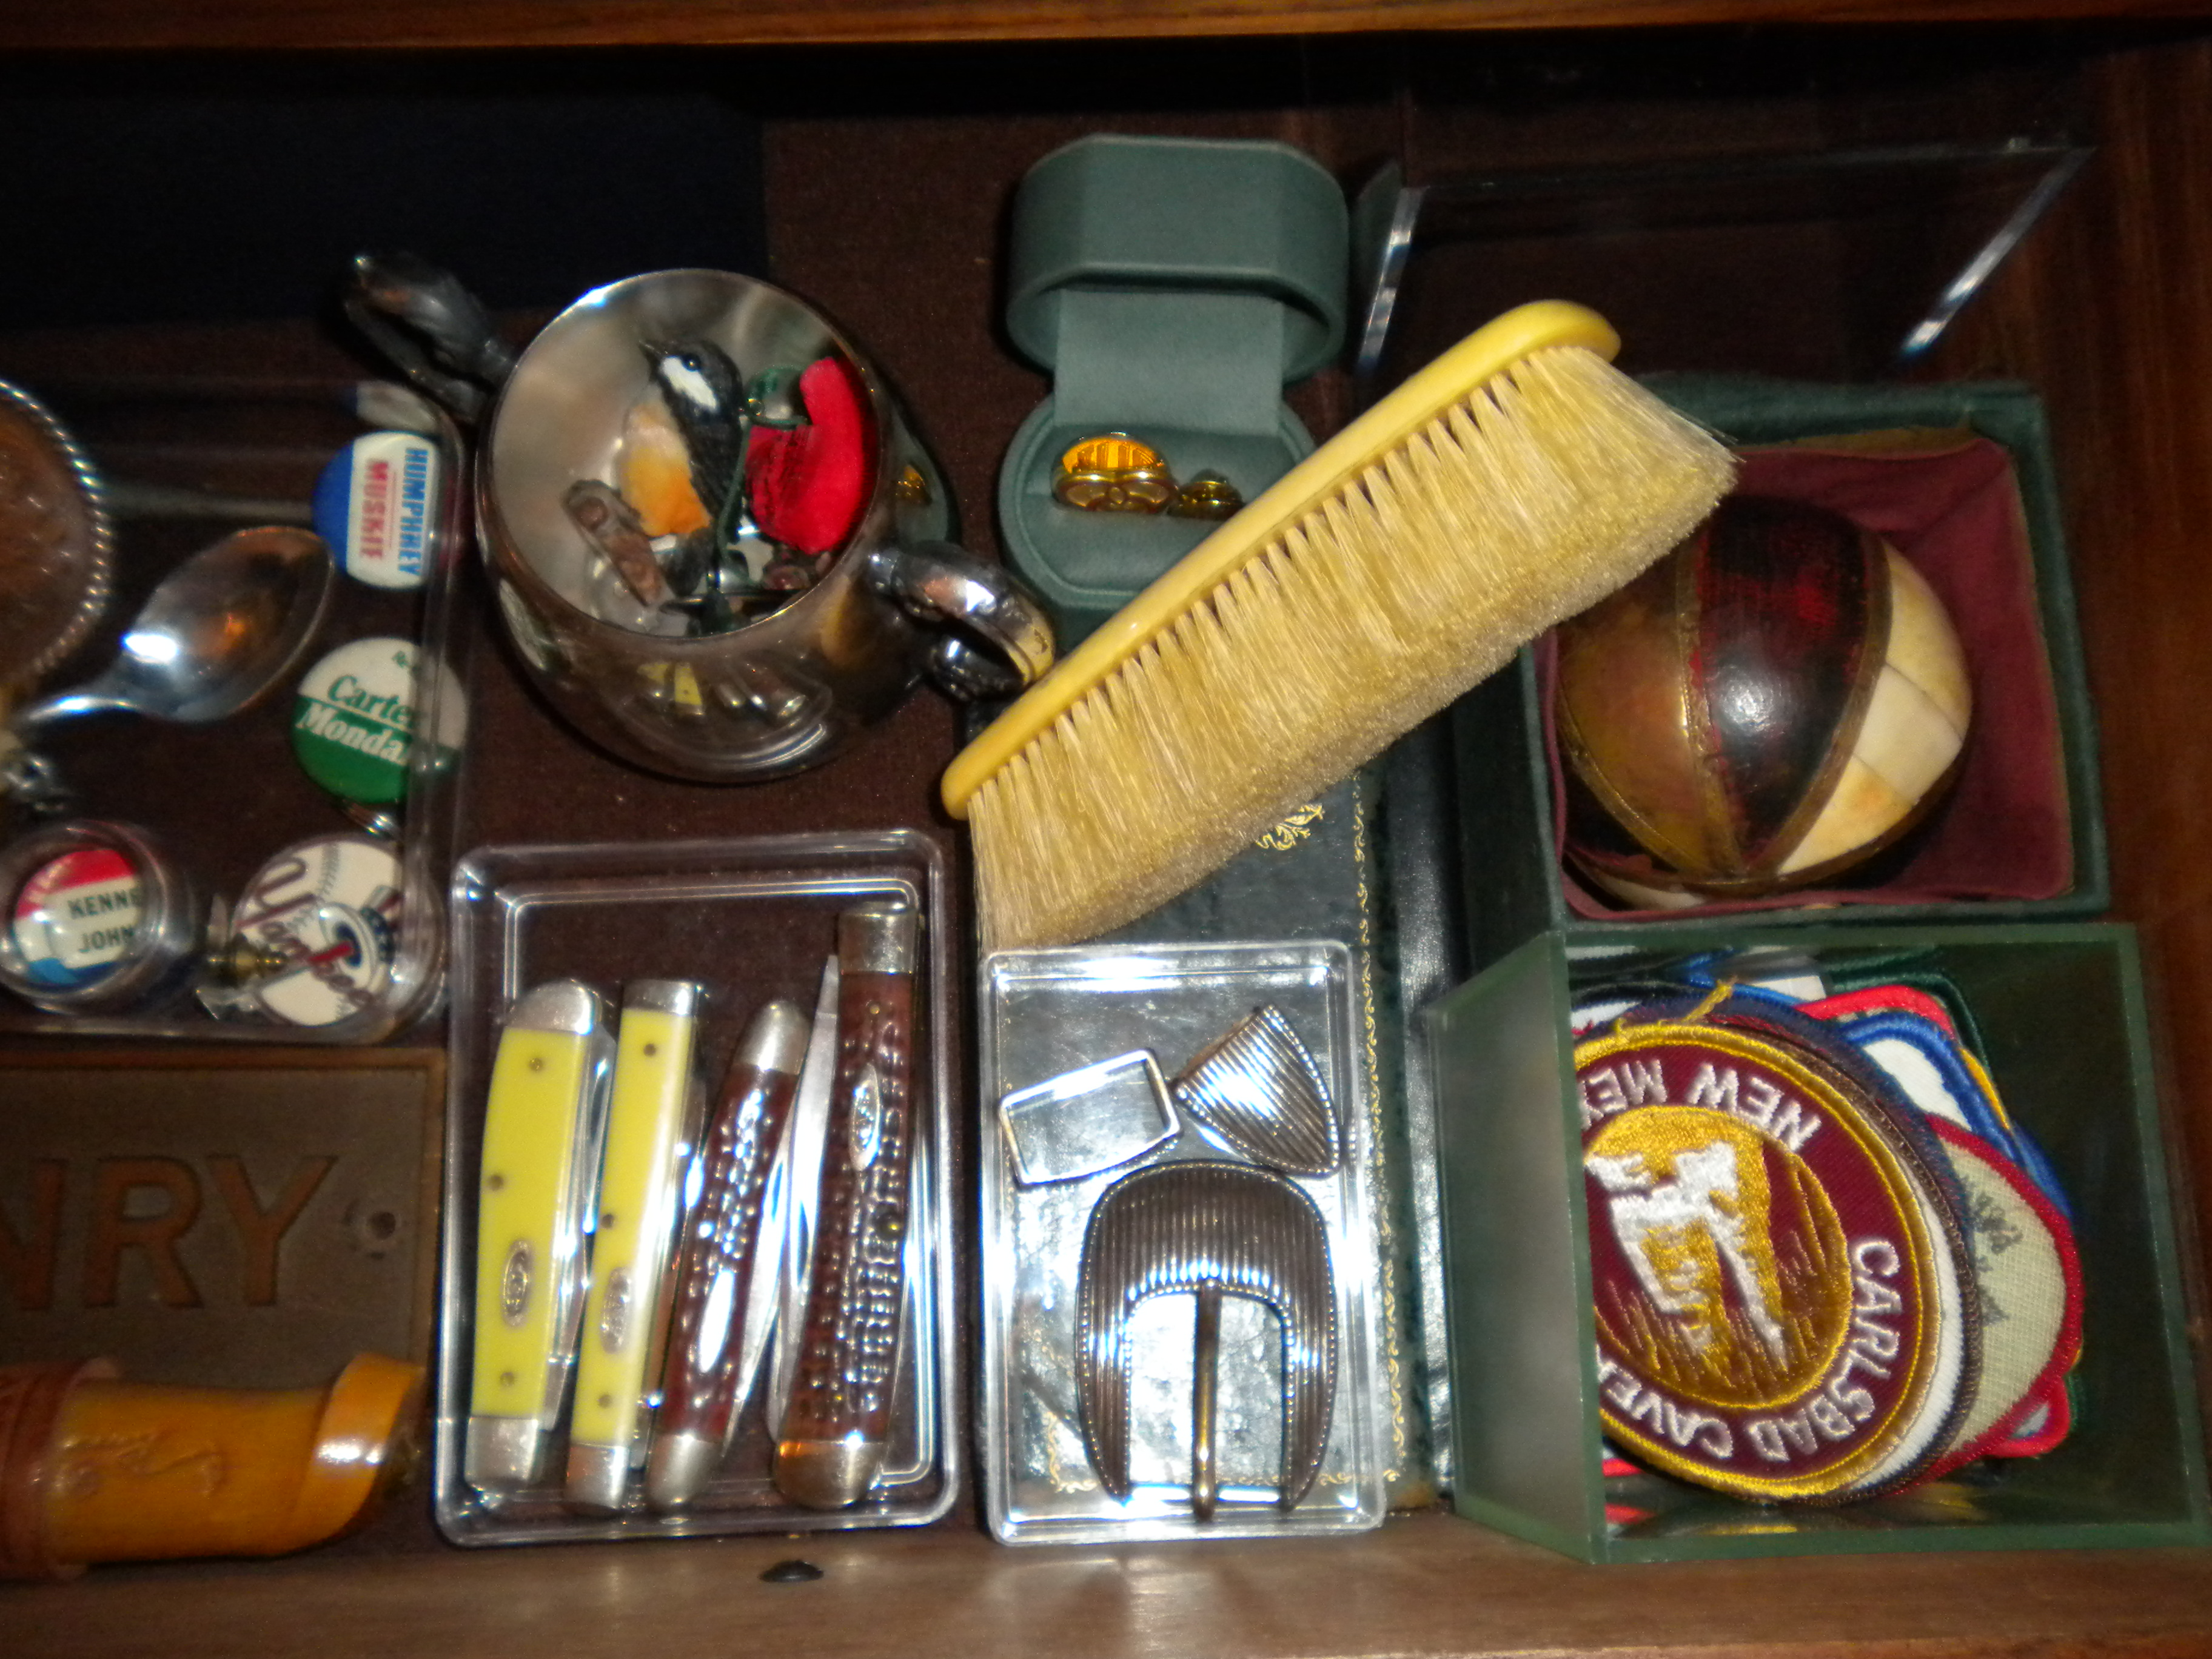 Nice clothes brush here, scout camping badges, campaign buttons, case knives, beltbuckle set